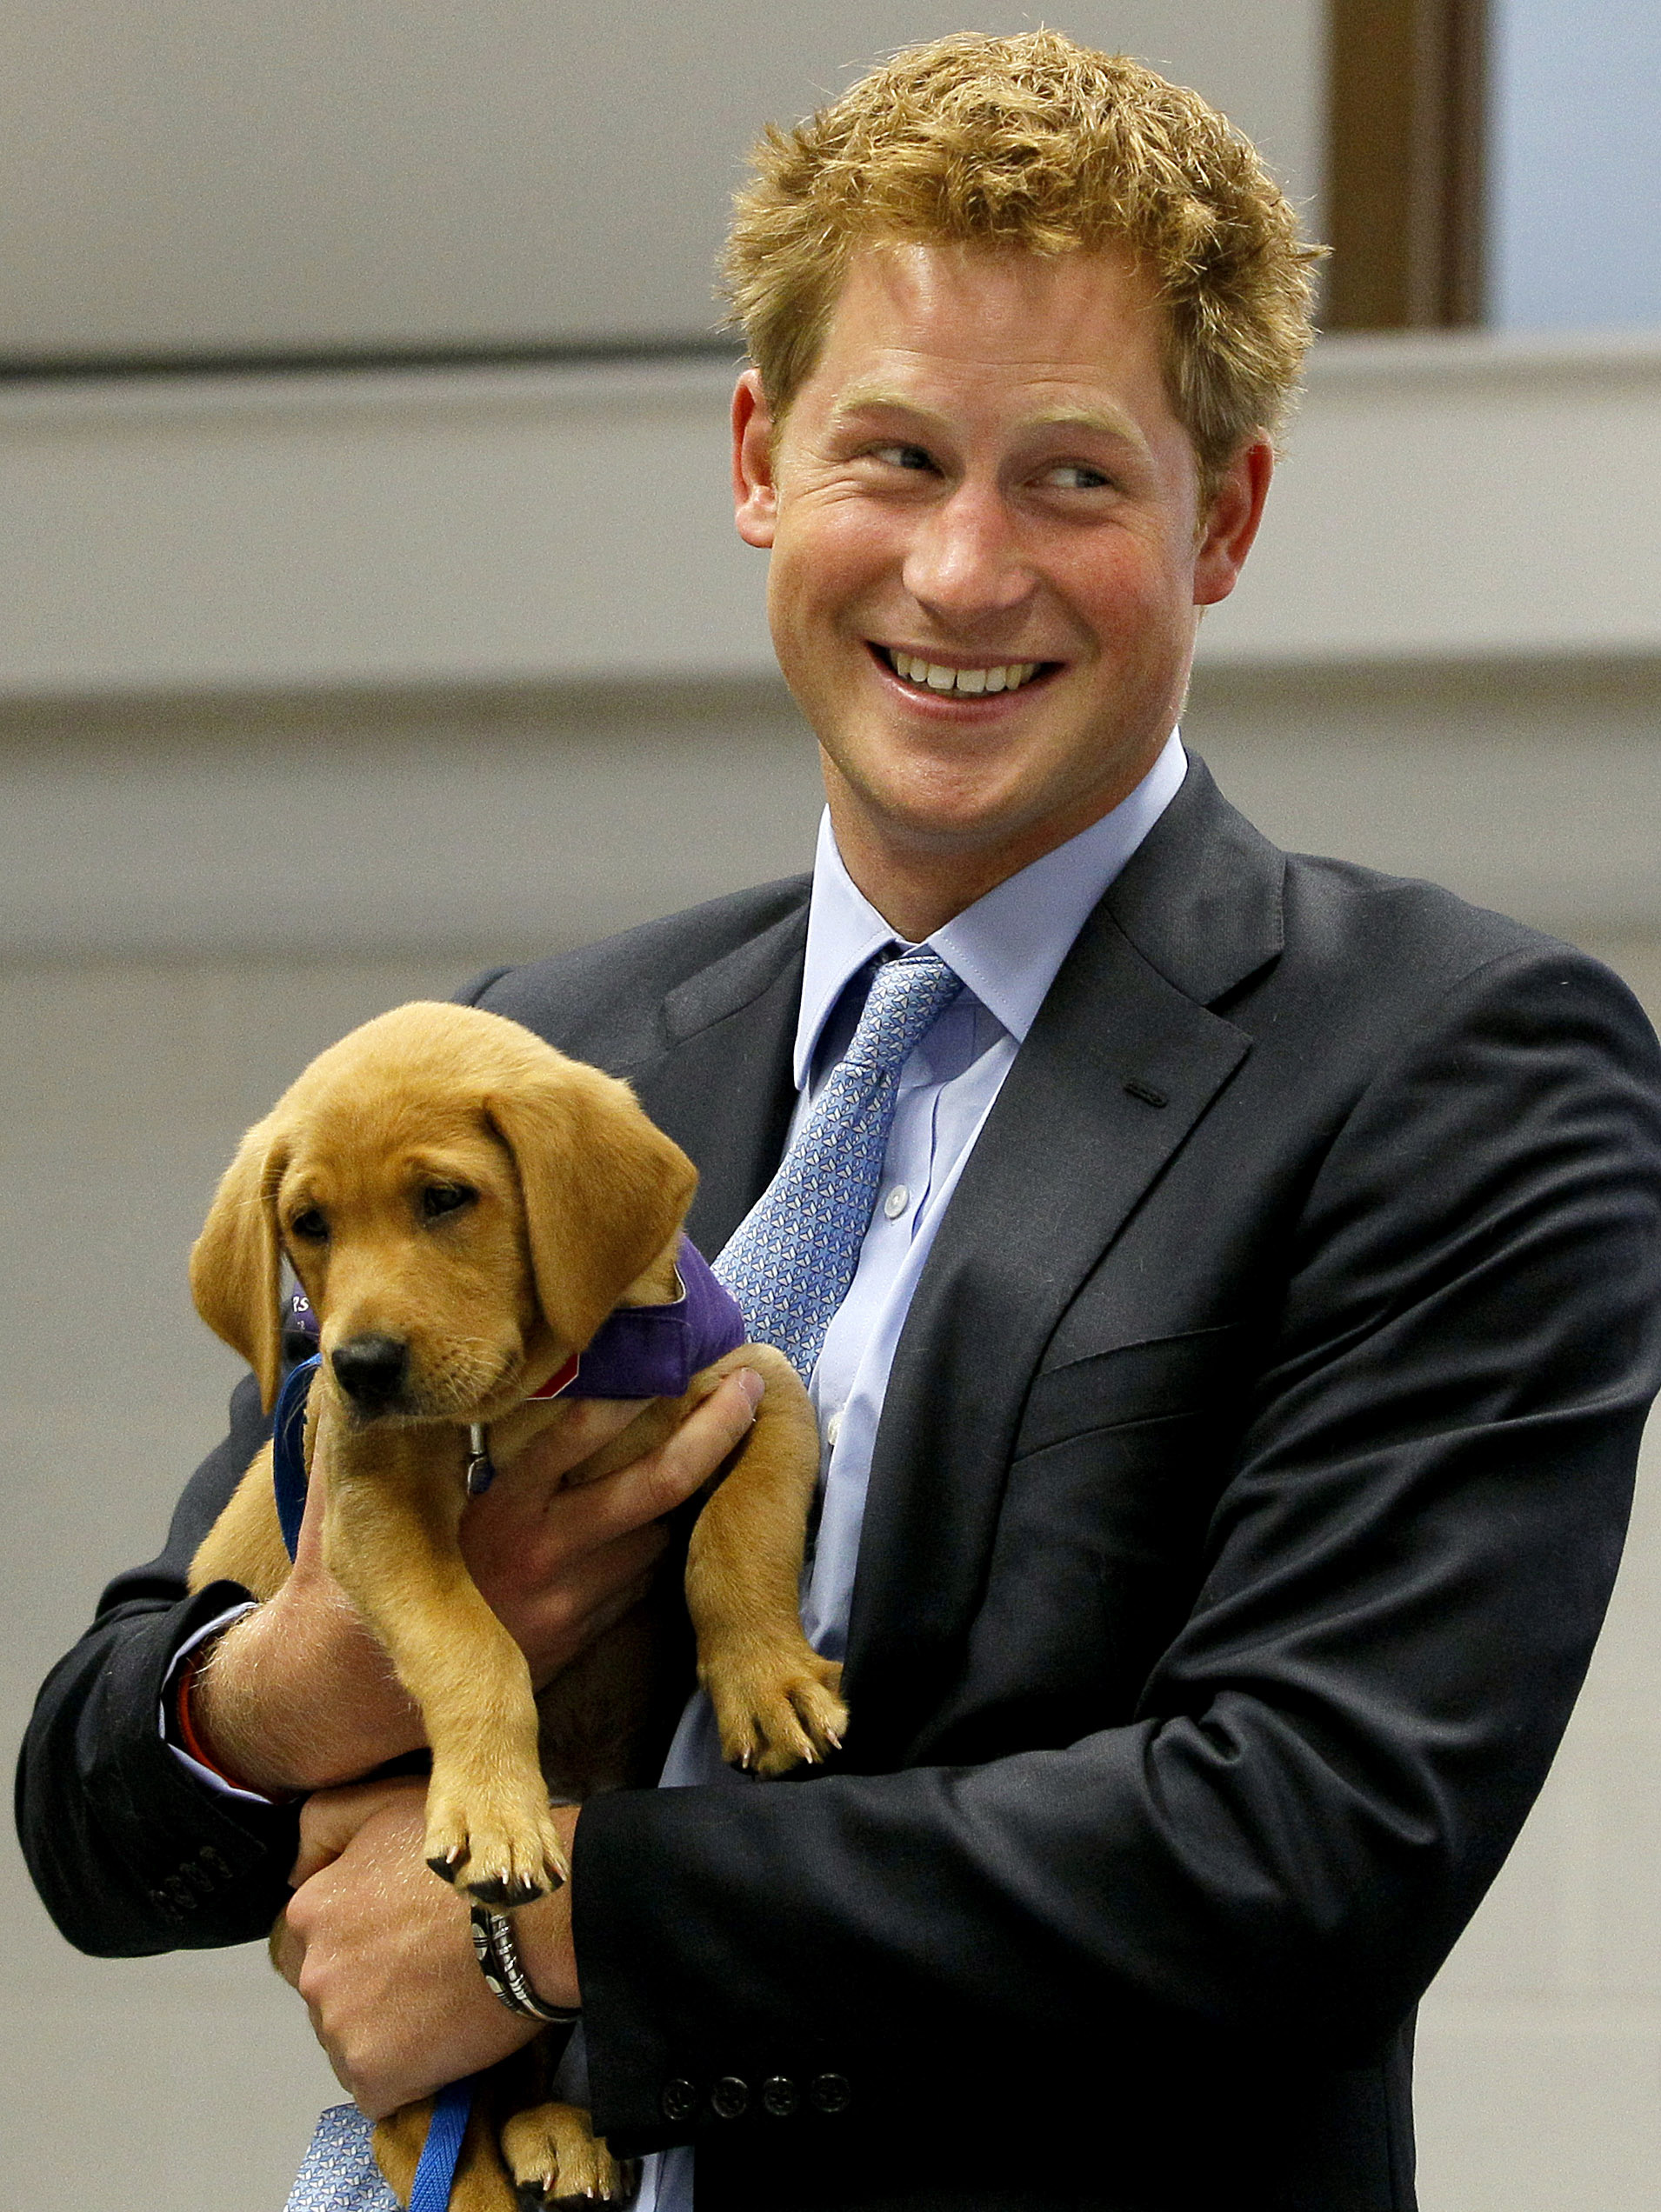 Britain's Prince Harry holds Veyron, an eight-week-old puppy, during a visit to the charity Canine Partners Training Centre, in Midhurst, England on July 13, 2010.